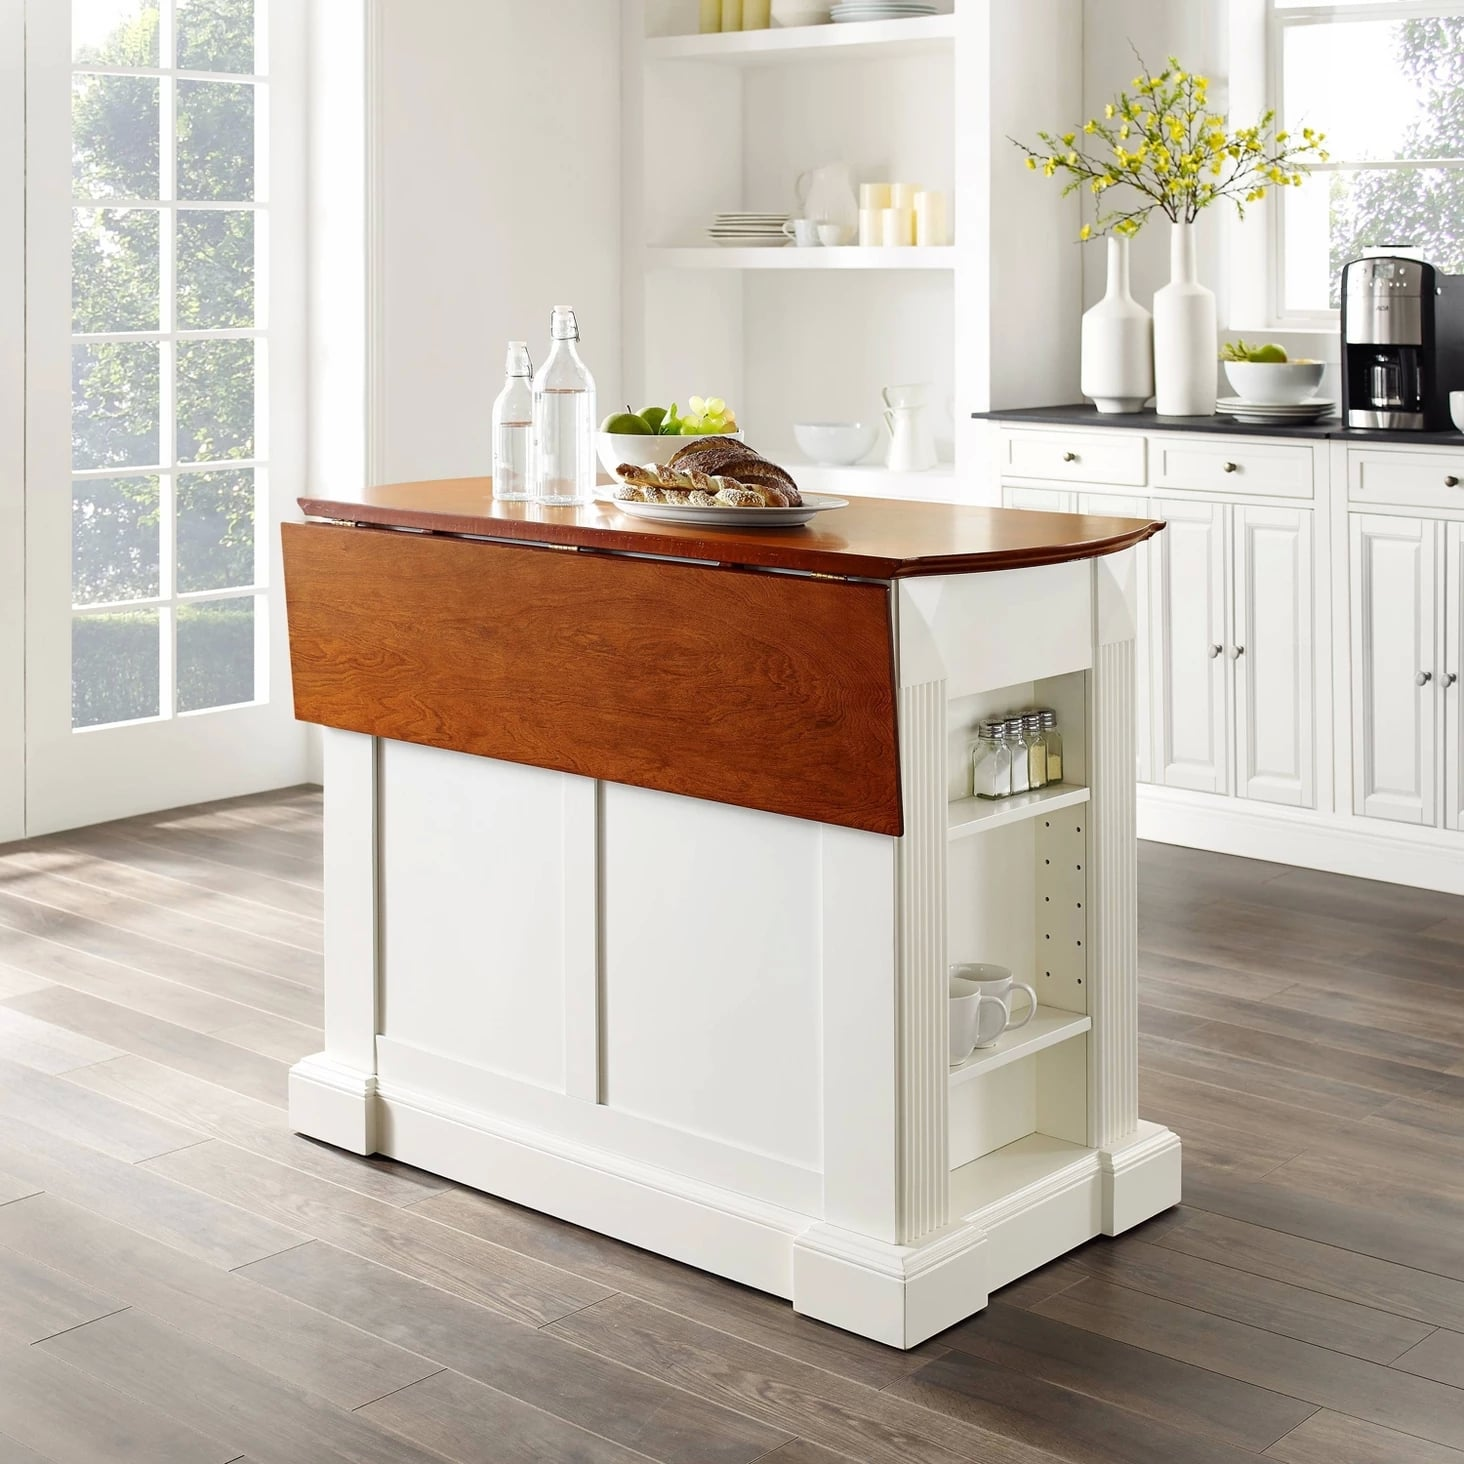 Drop Leaf Breakfast Bar Top Kitchen Island | Keep Your ...